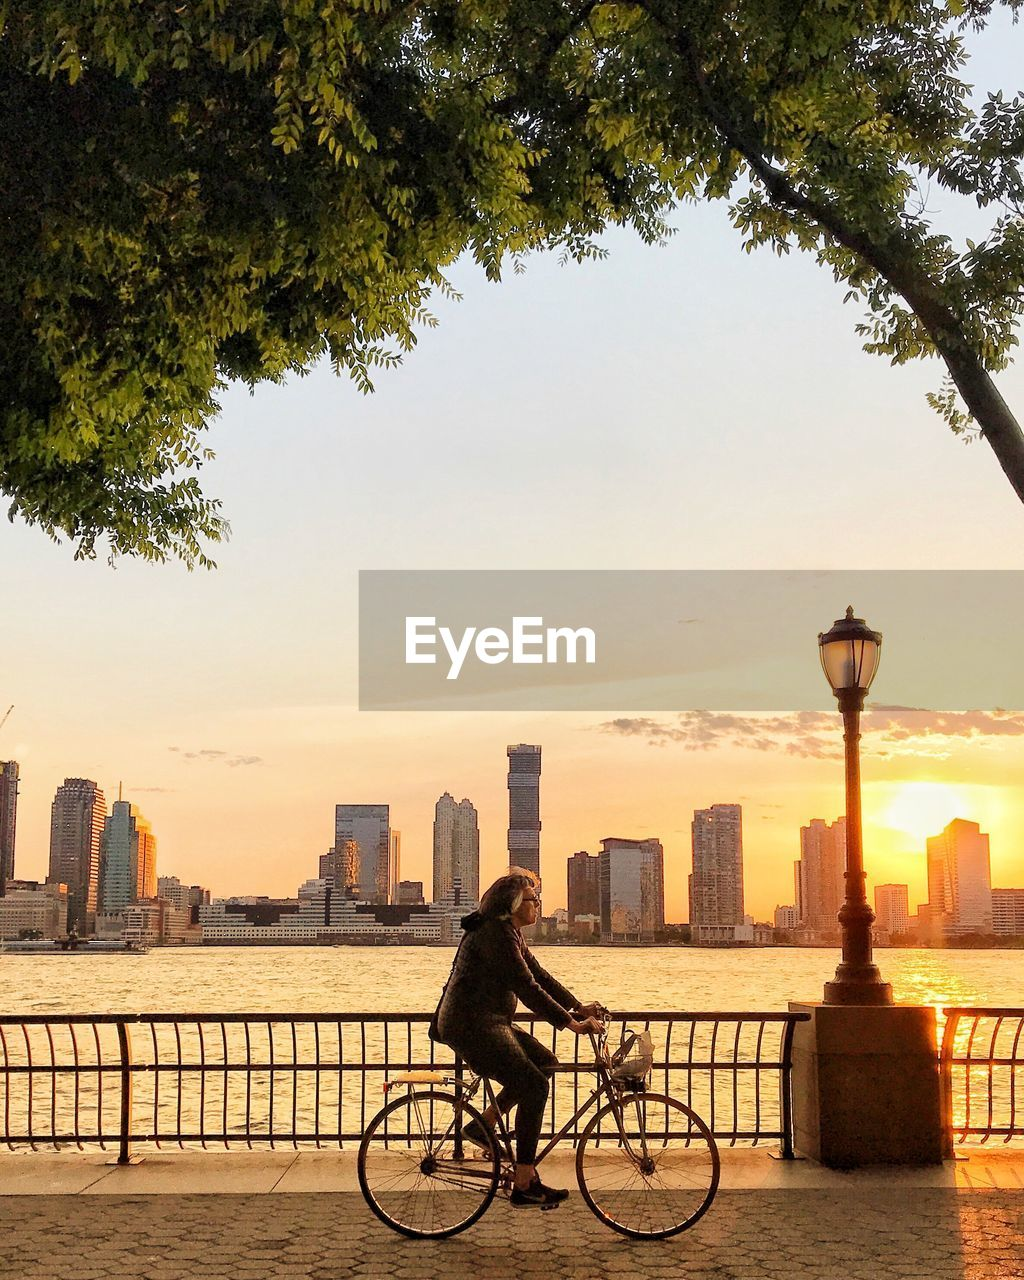 architecture, built structure, sky, city, building exterior, bicycle, nature, tree, sunset, transportation, one person, plant, street, mode of transportation, water, railing, building, land vehicle, real people, lifestyles, riding, outdoors, bridge - man made structure, office building exterior